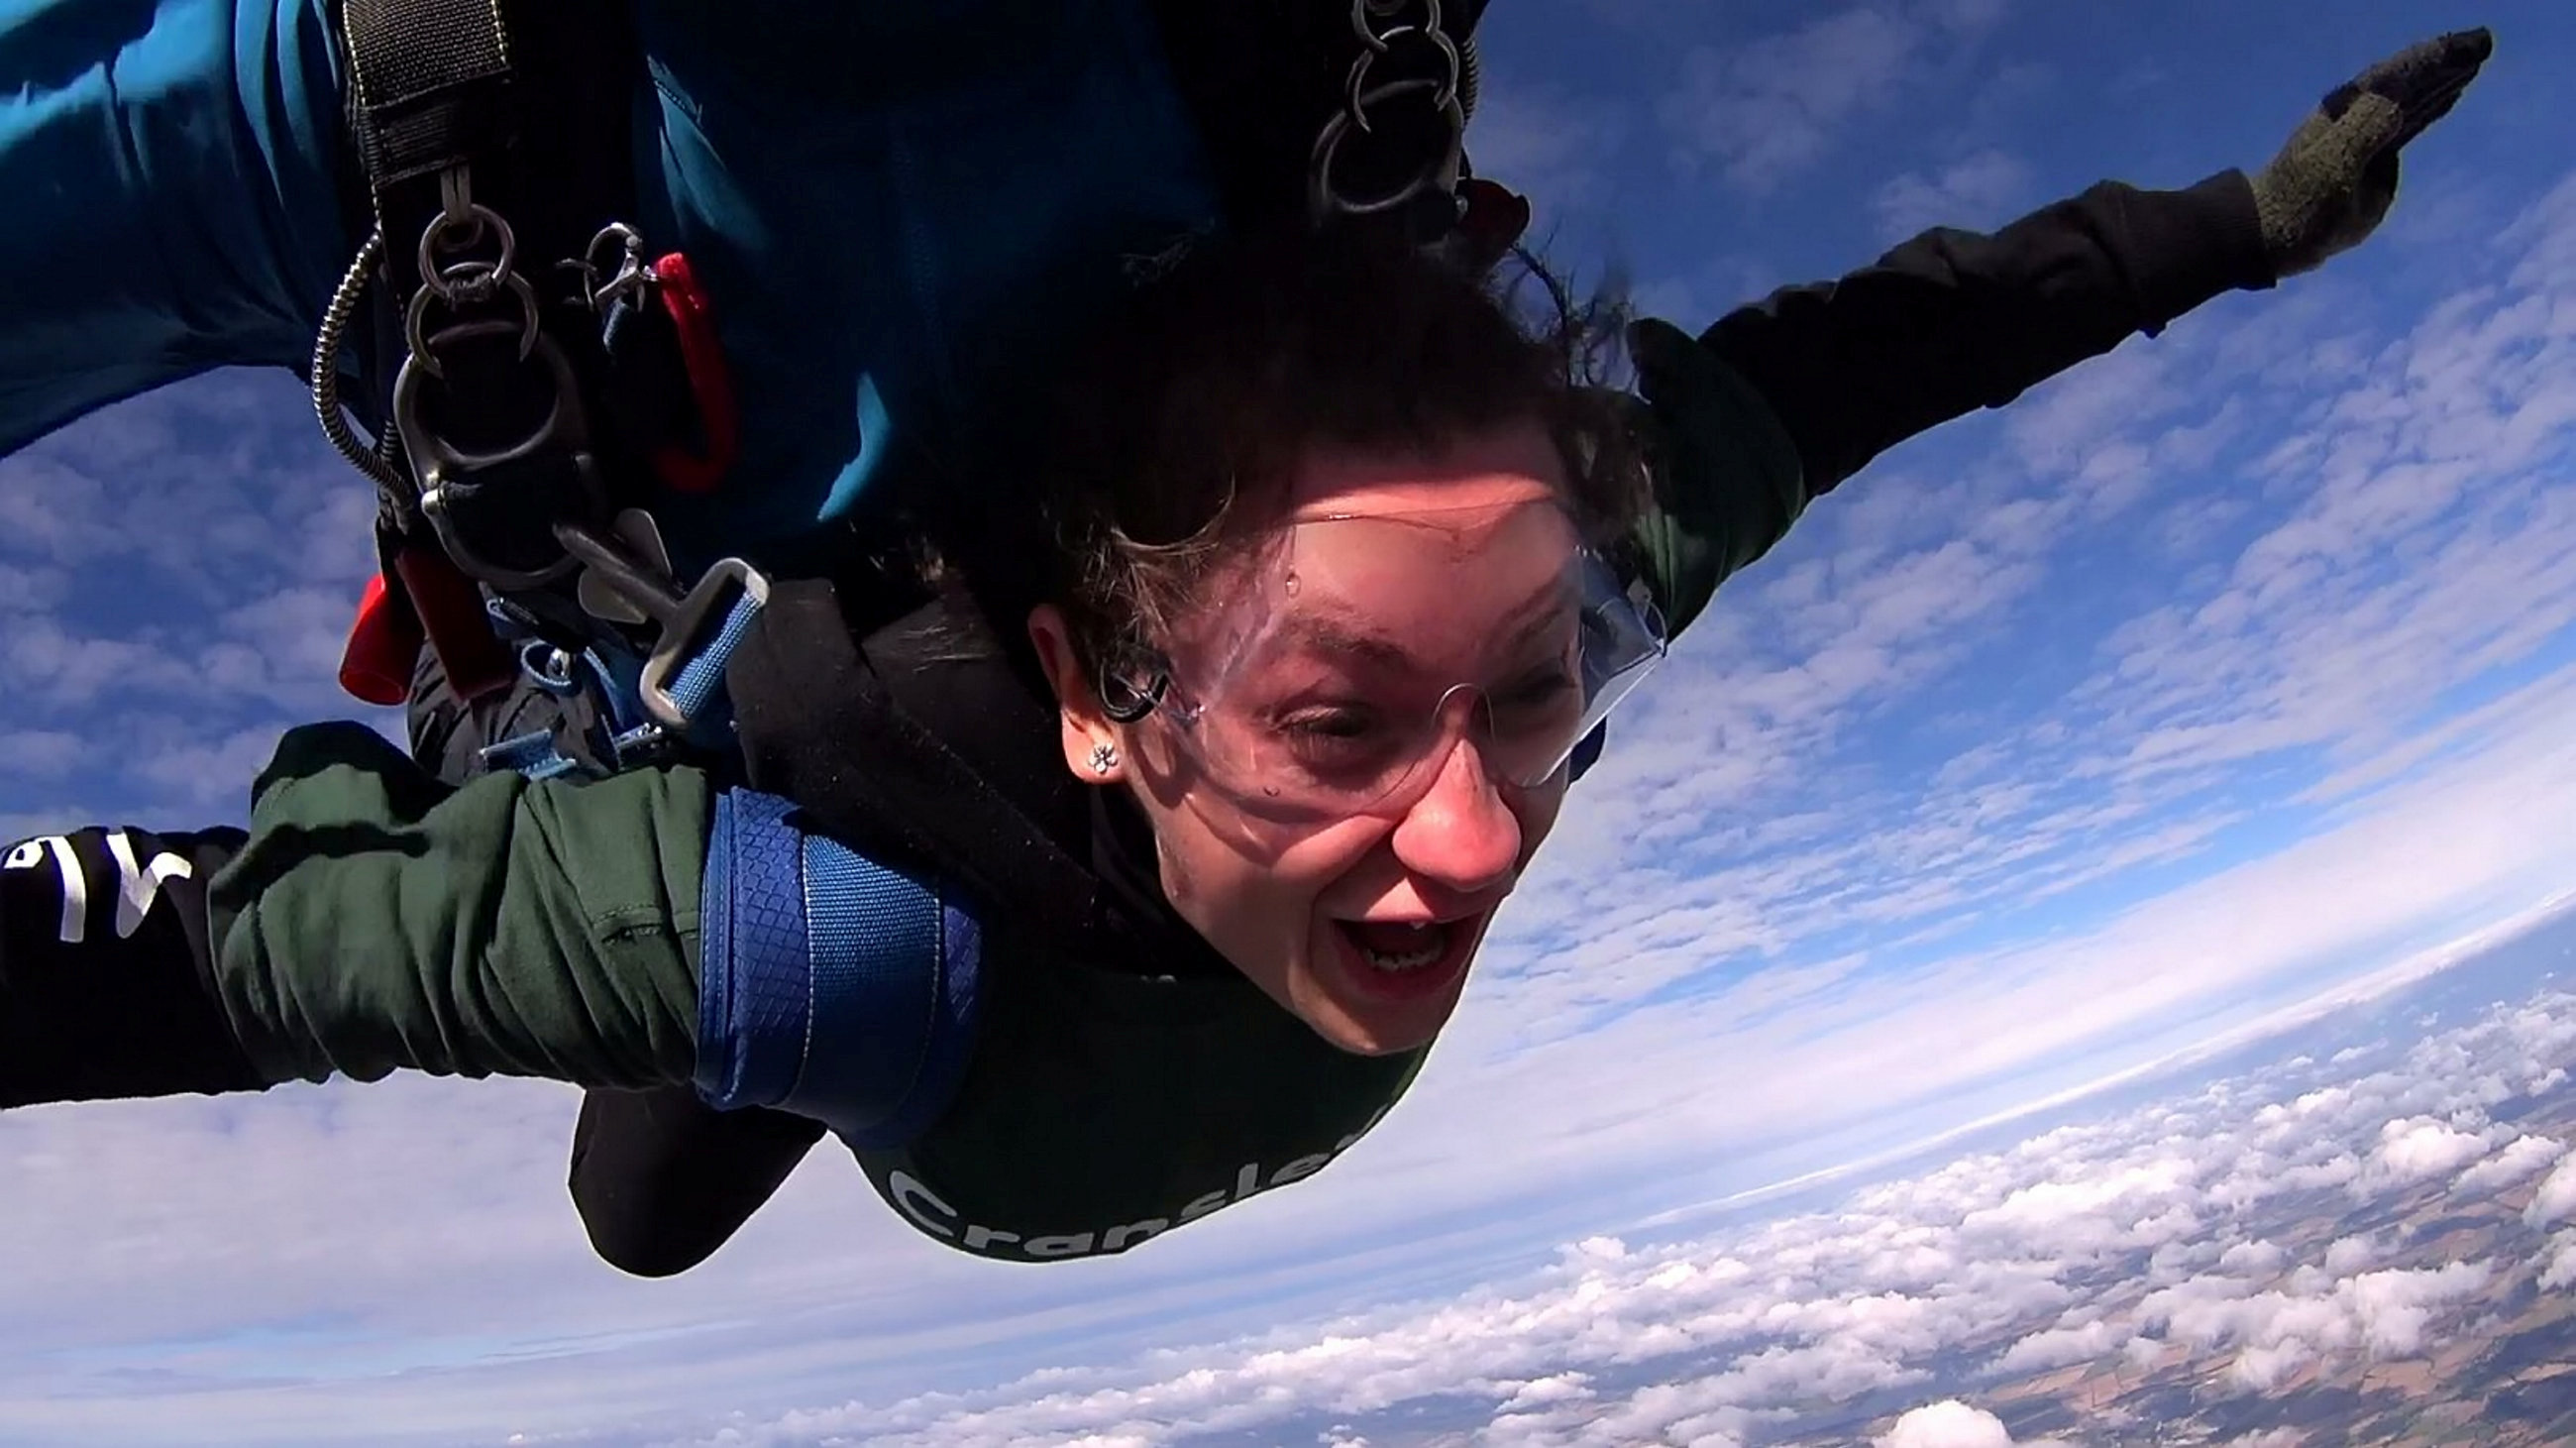 Man proposes to girlfriend after skydiving from 13,000 feet - fox